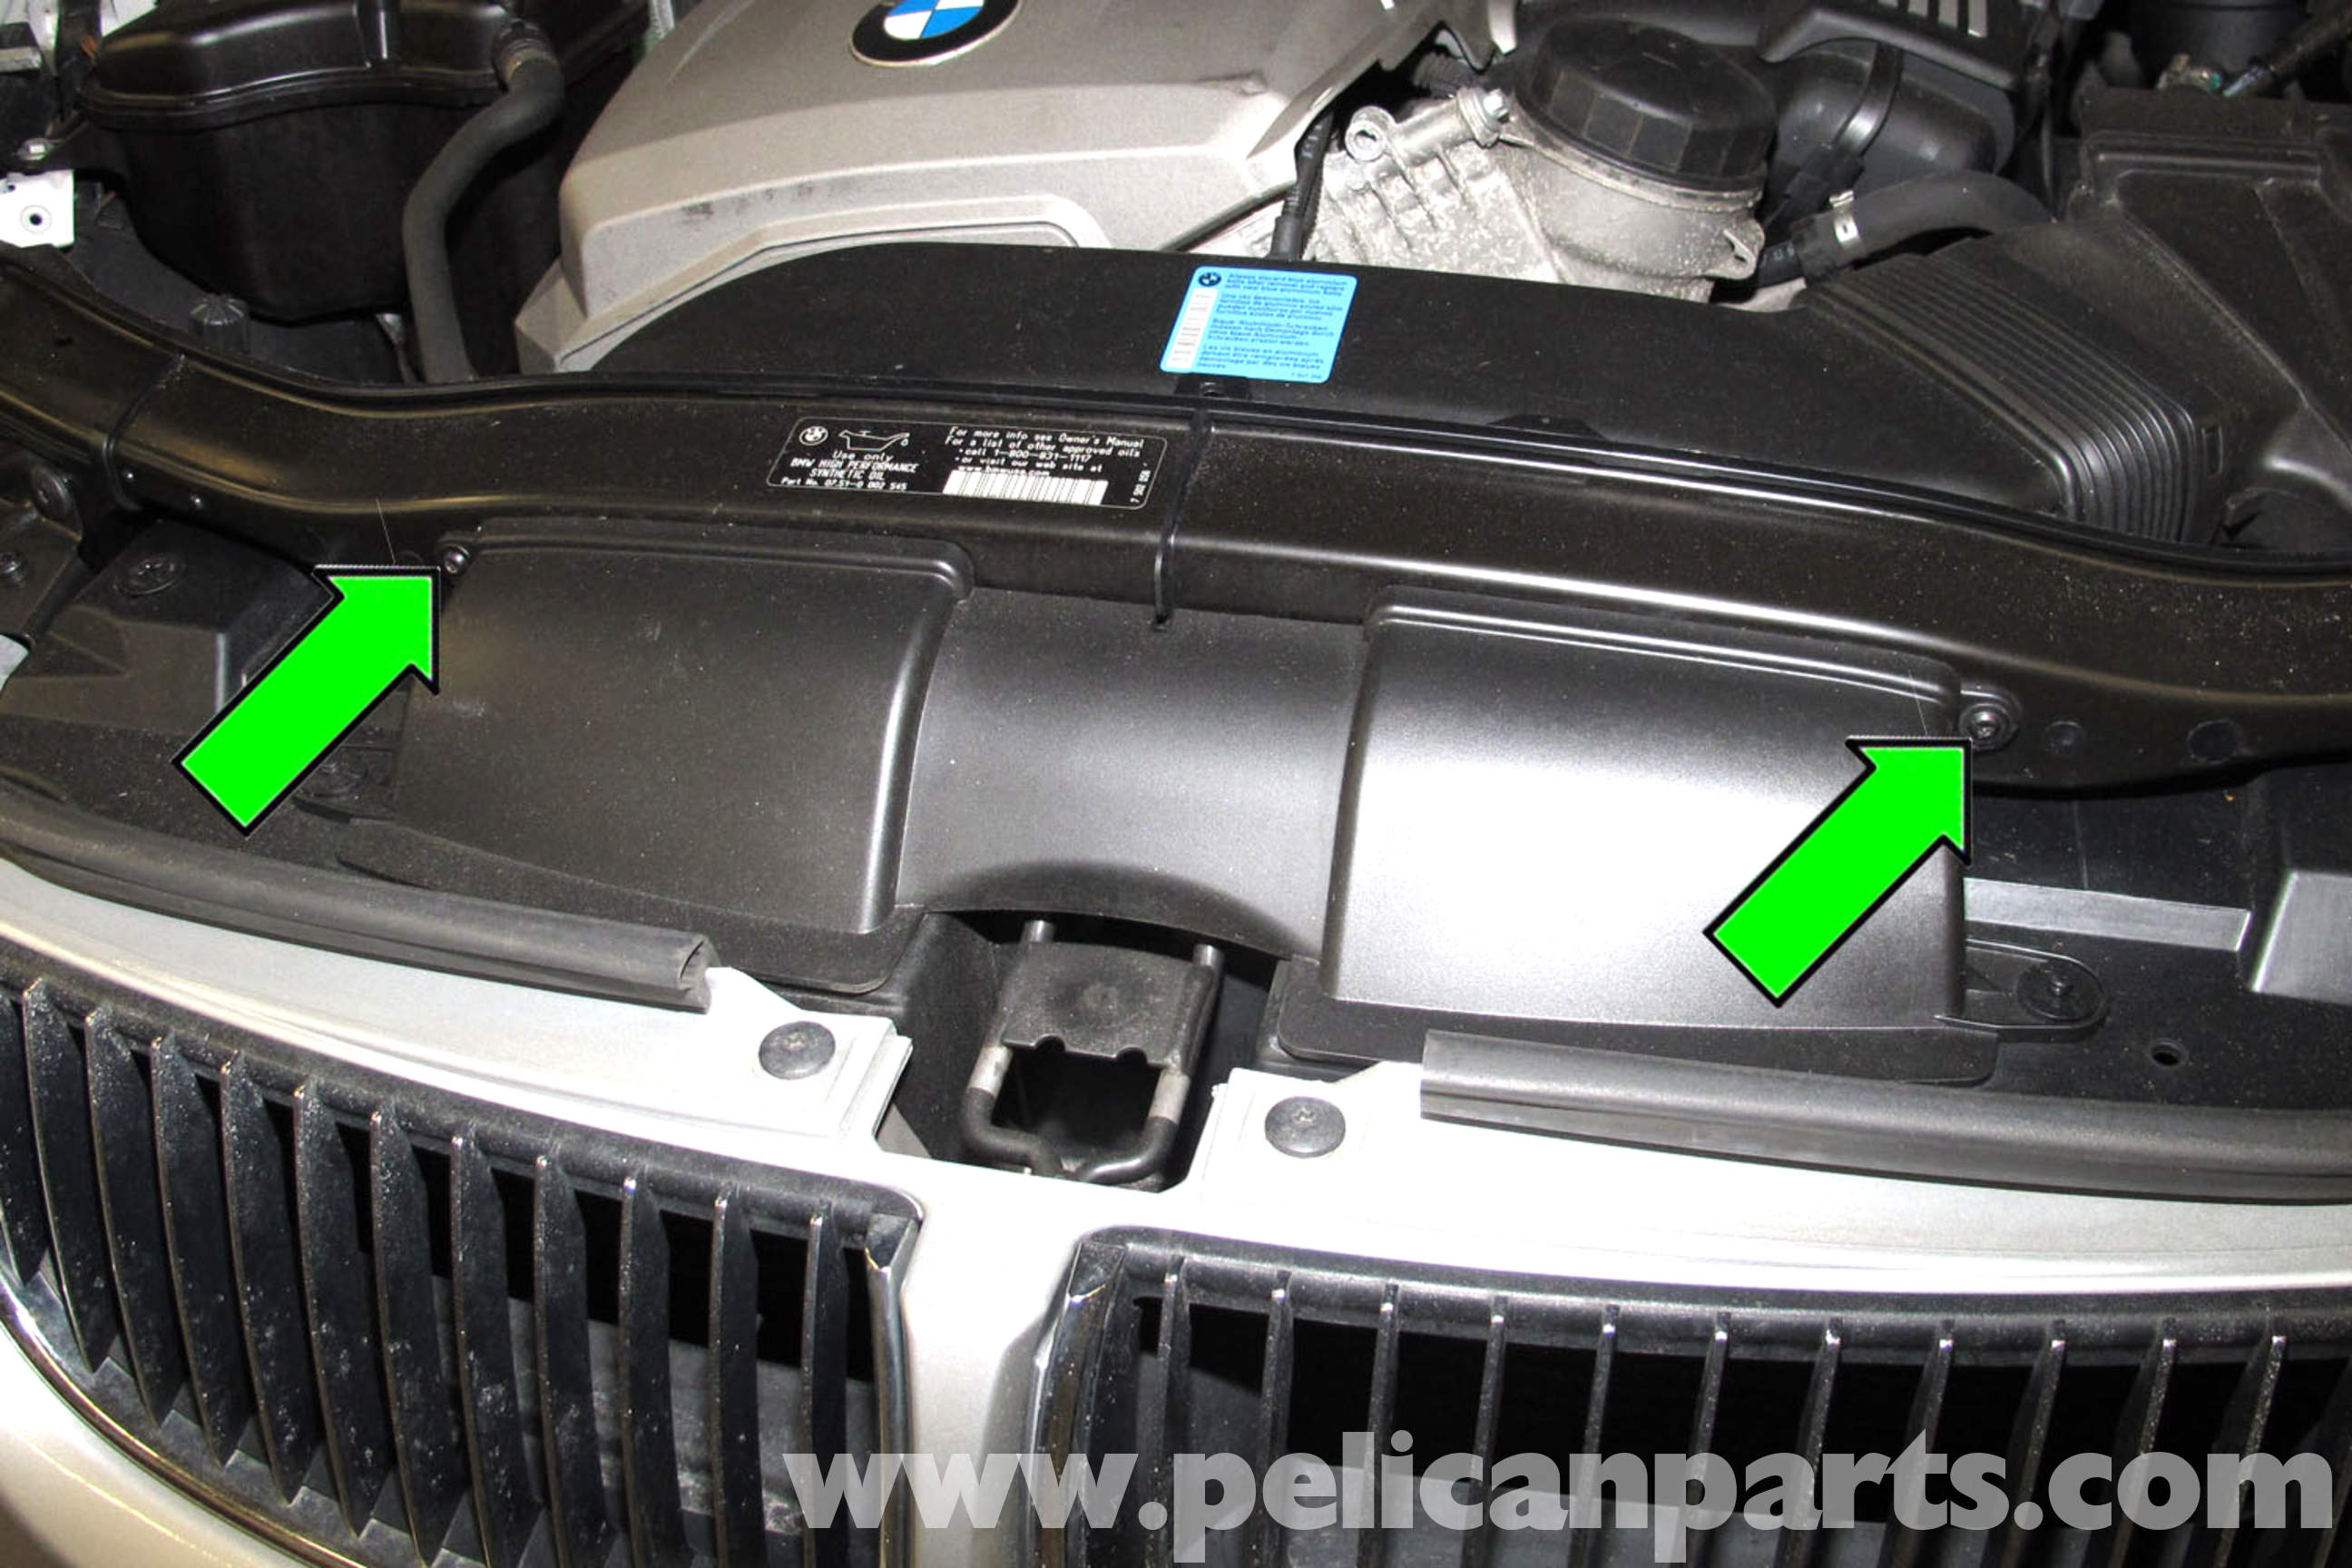 Bmw E90 Intake Manifold Replacement E91 E92 E93 Pelican Parts Diy Maintenance Article